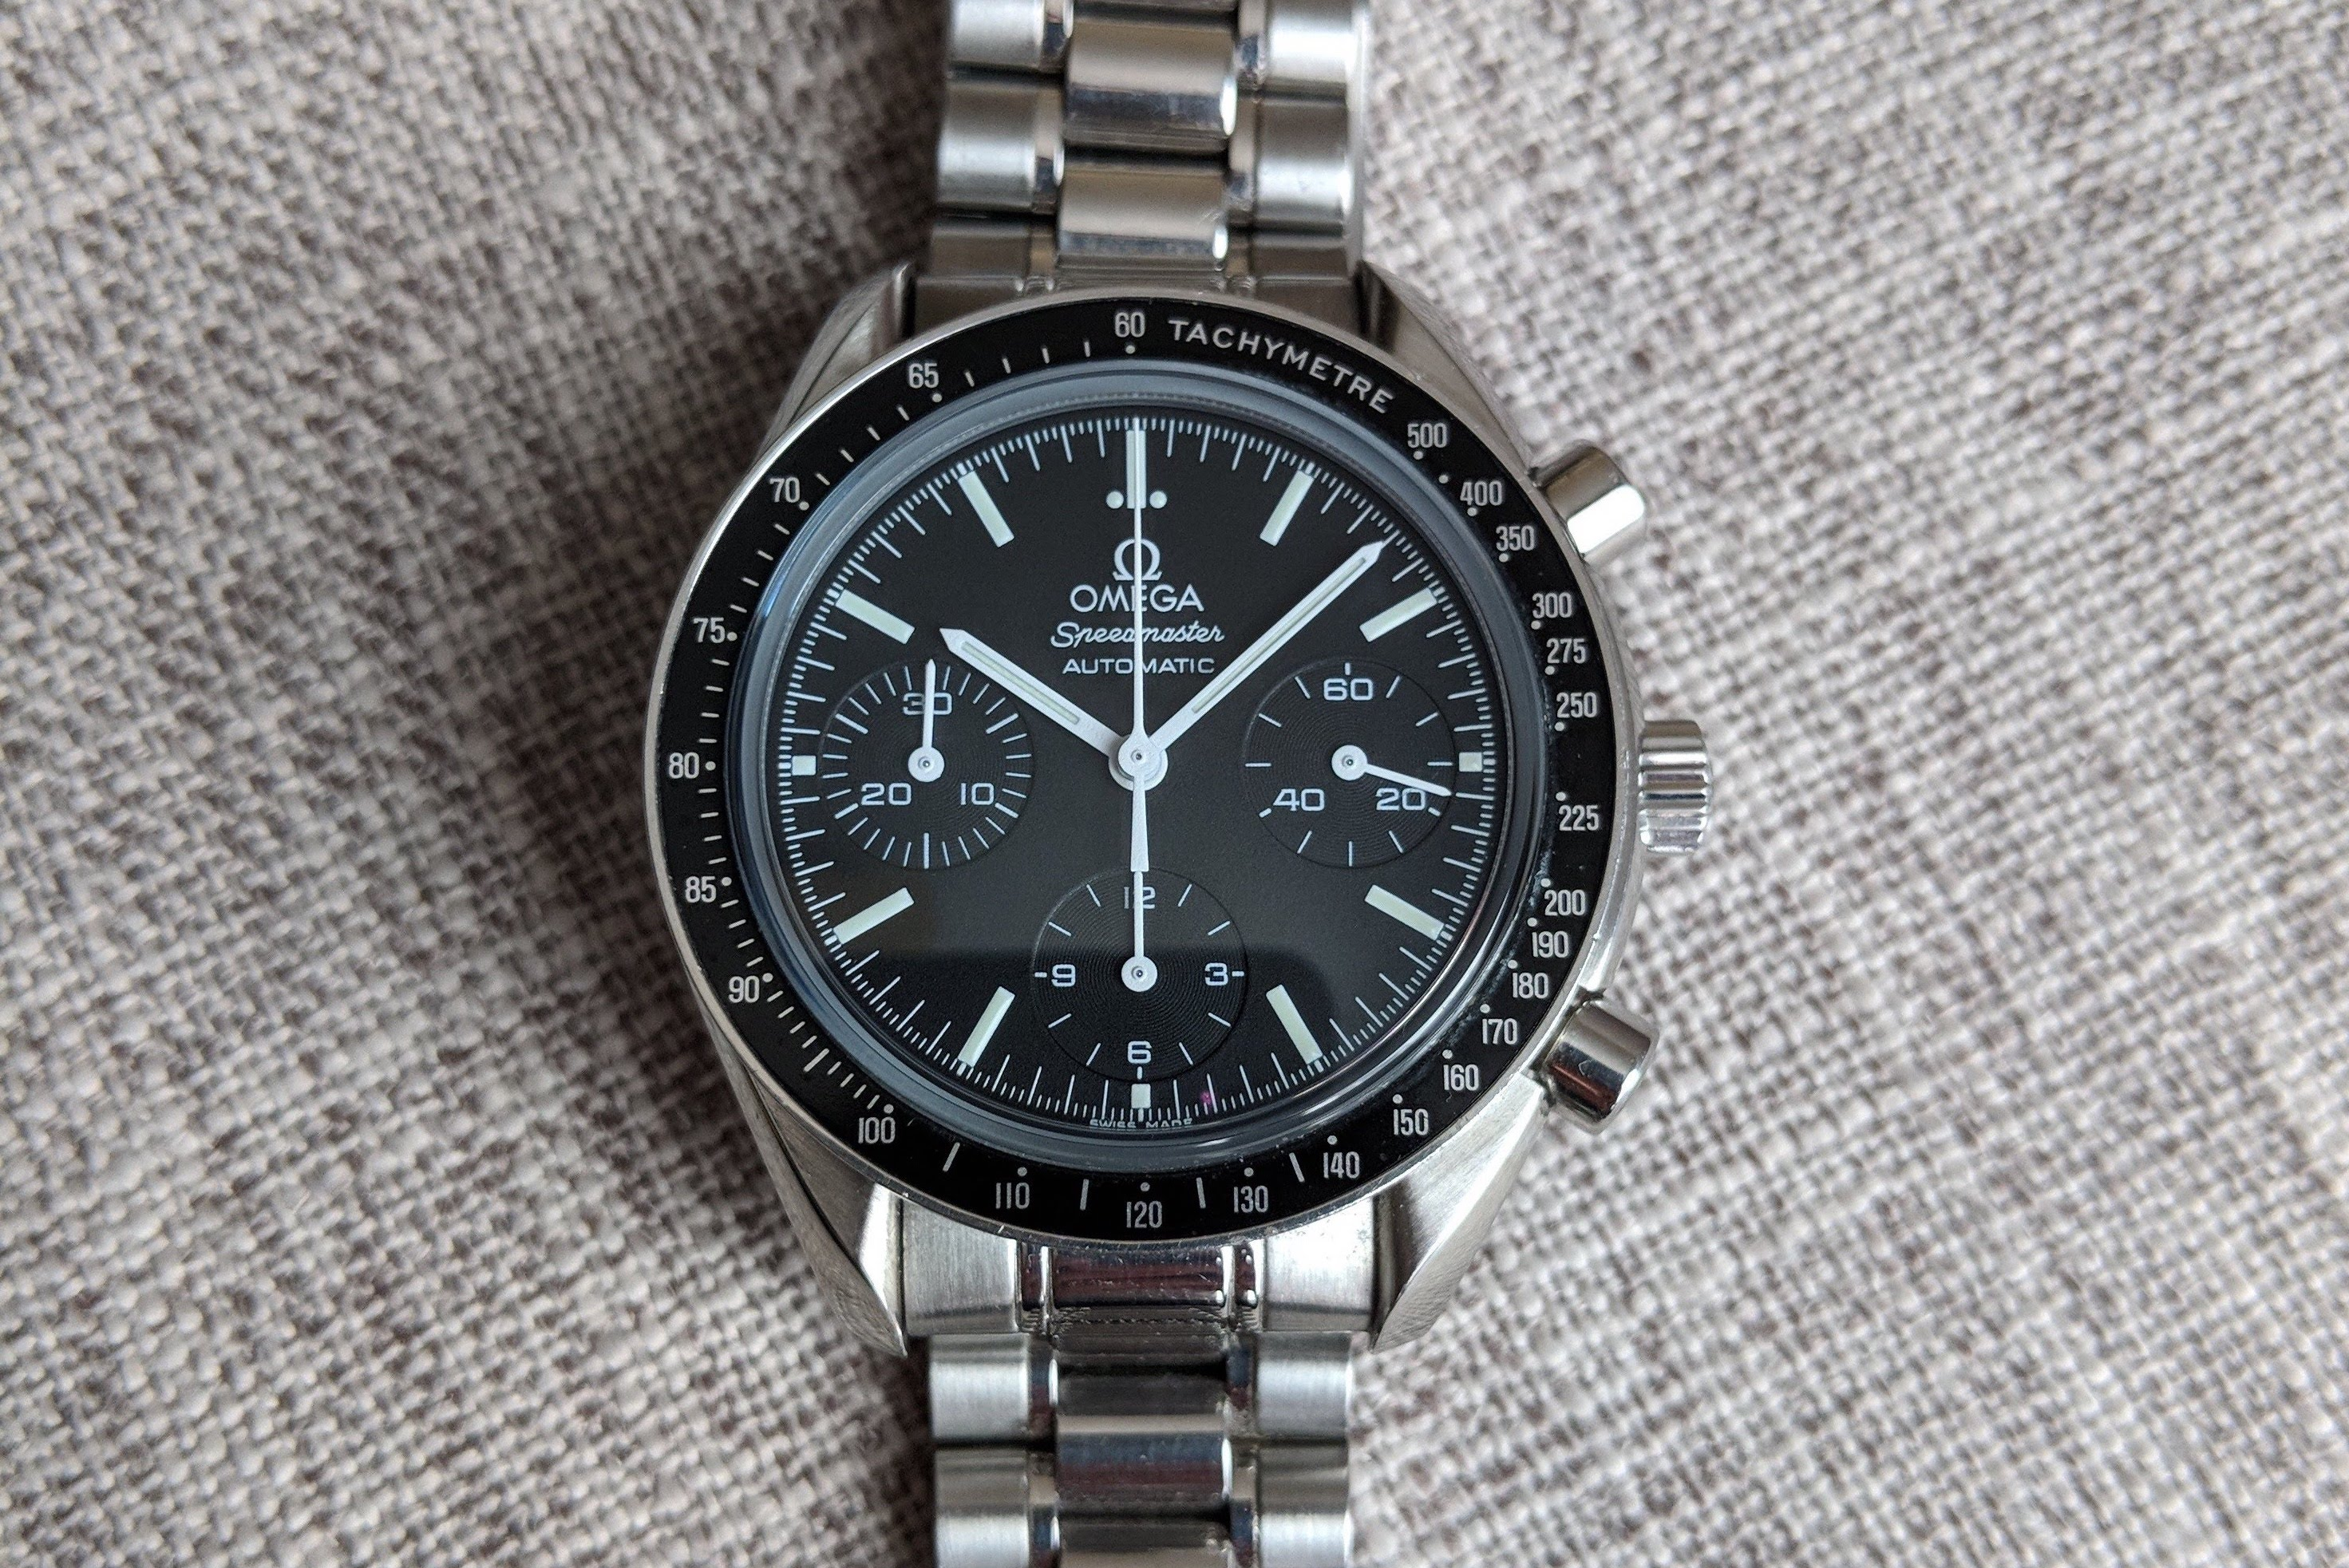 Omega Speedmaster Reduced Ii 3539 50 00 Watch Review Watchreviewblog